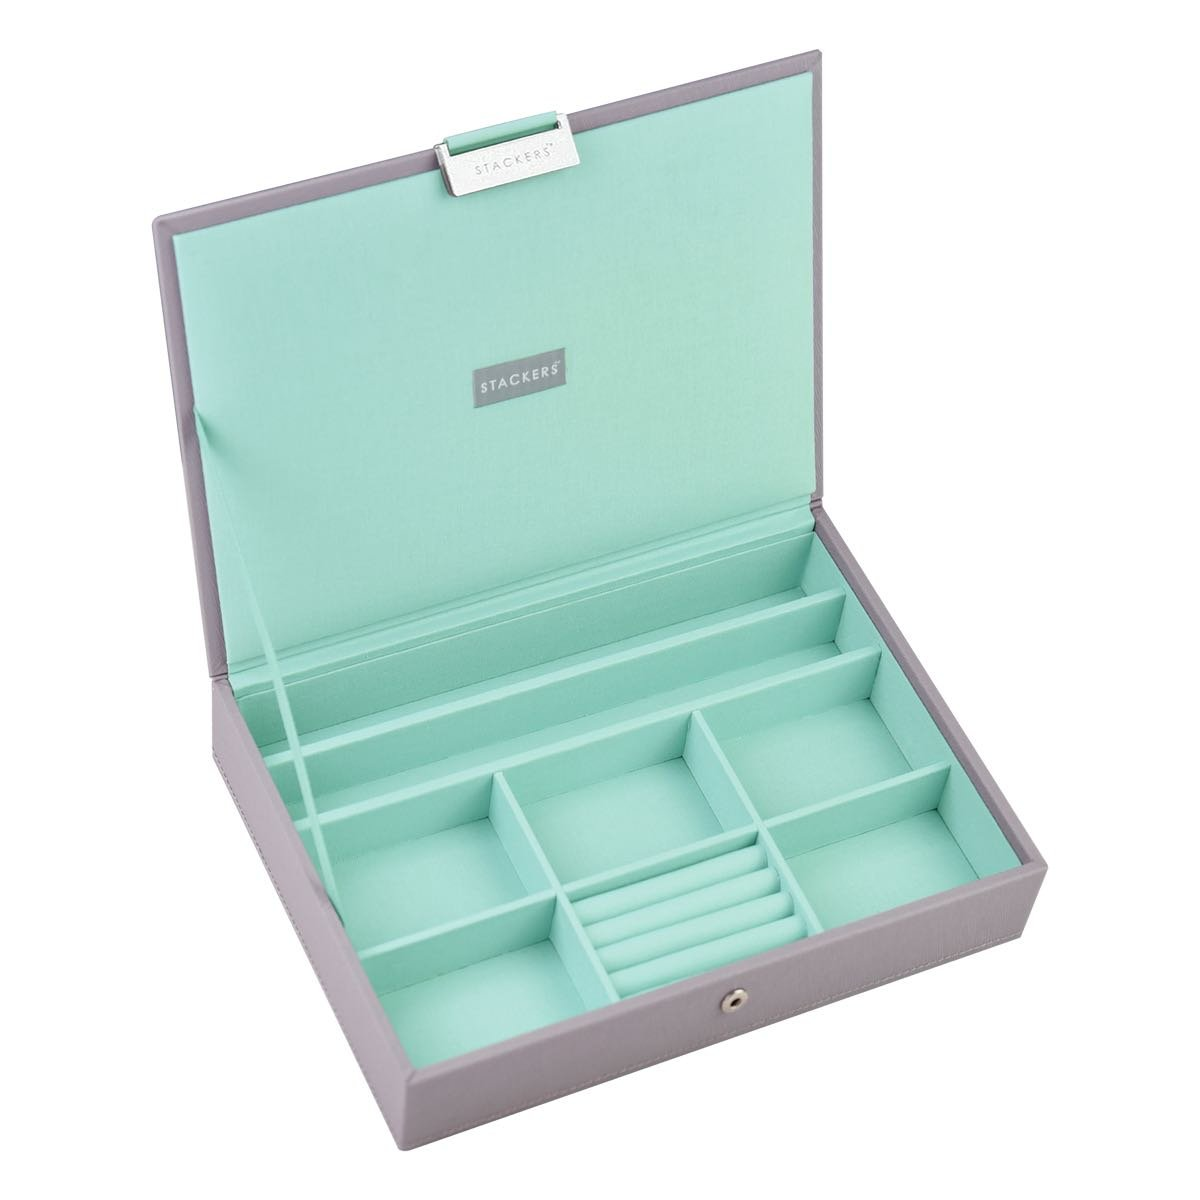 STACKERS 'CLASSIC SIZE' Dove Grey Cross Hatch Lidded STACKER Jewellery Box with Mint Green Lining Carters of London 73545